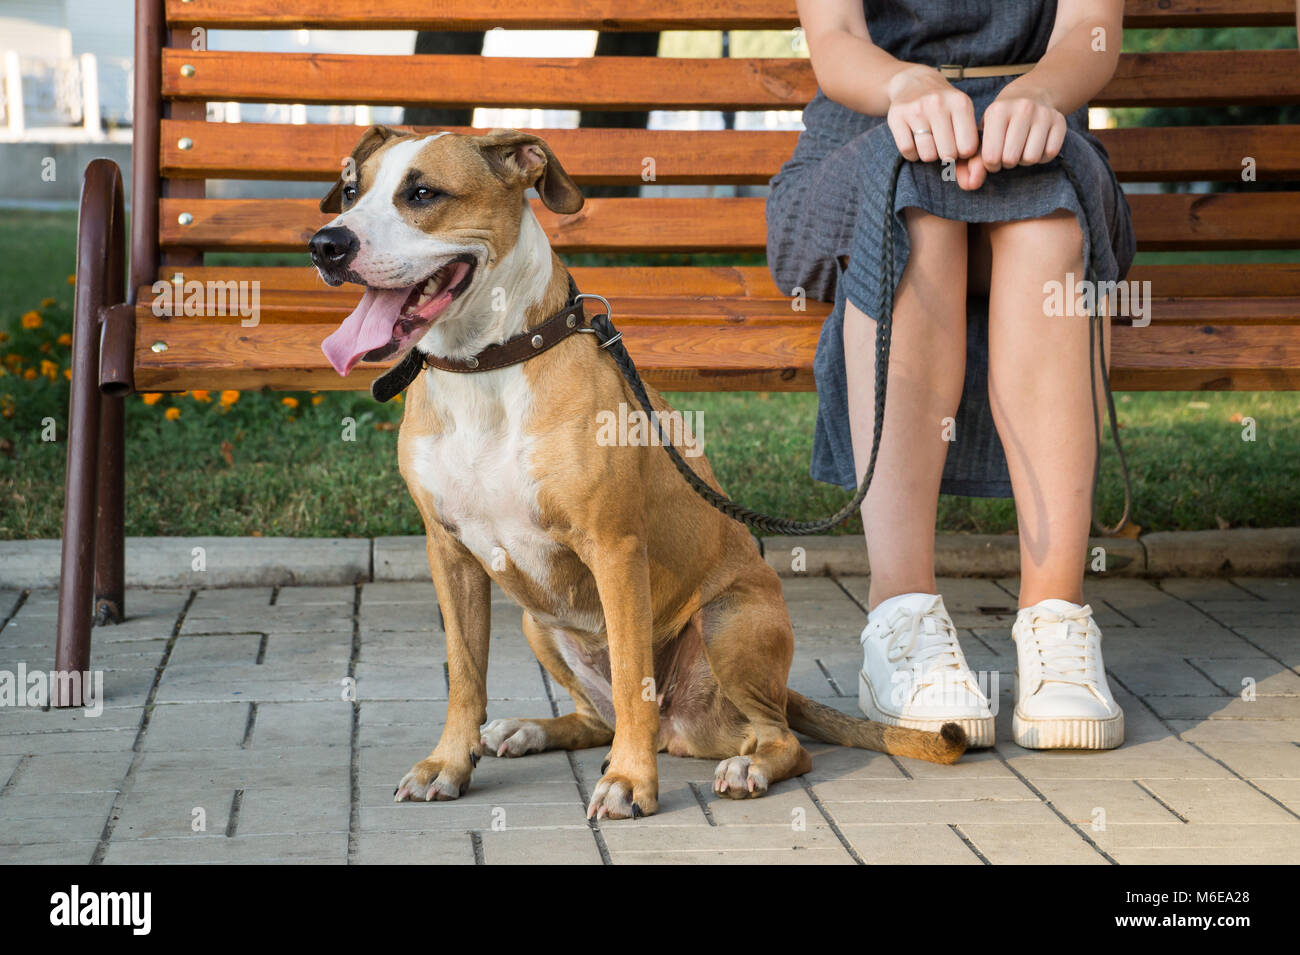 Cheerful and kind dog sits next to her owner at park in the city - Stock Image